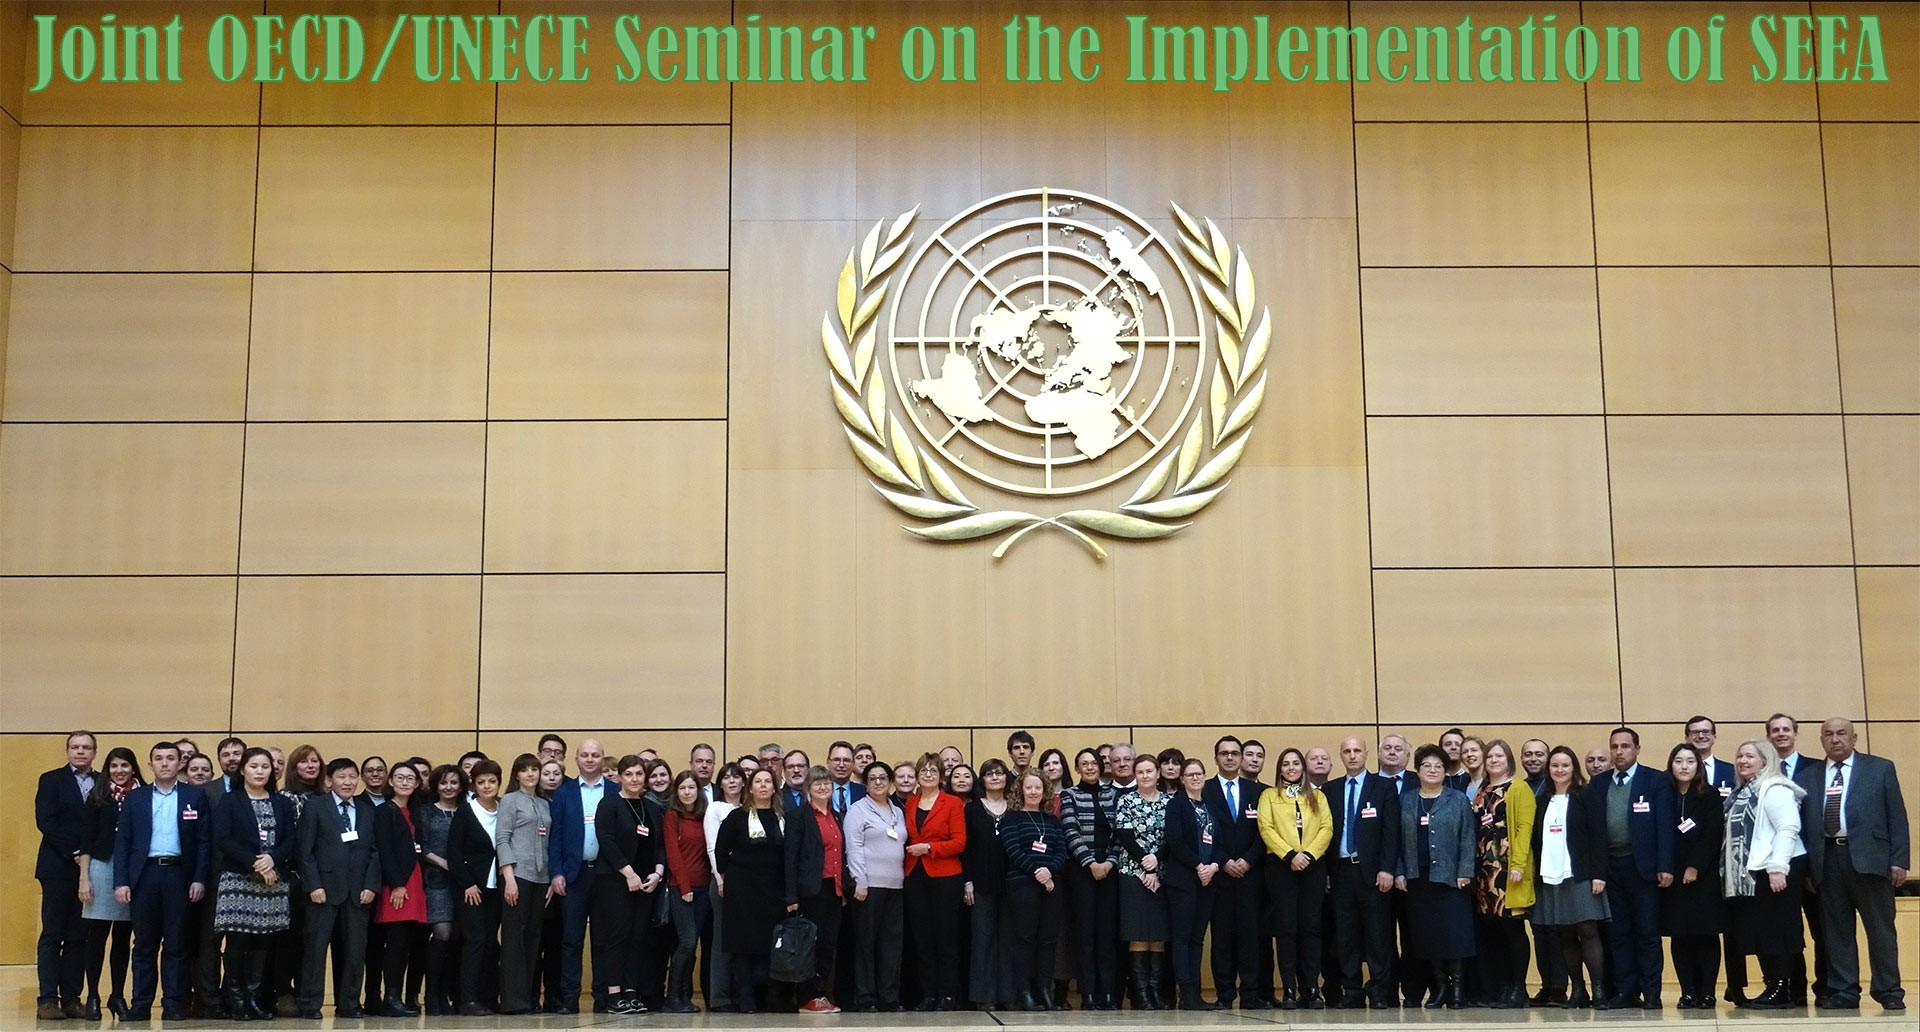 Our experts made a presentation at the 3rd Joint OECD/UNECE Seminar